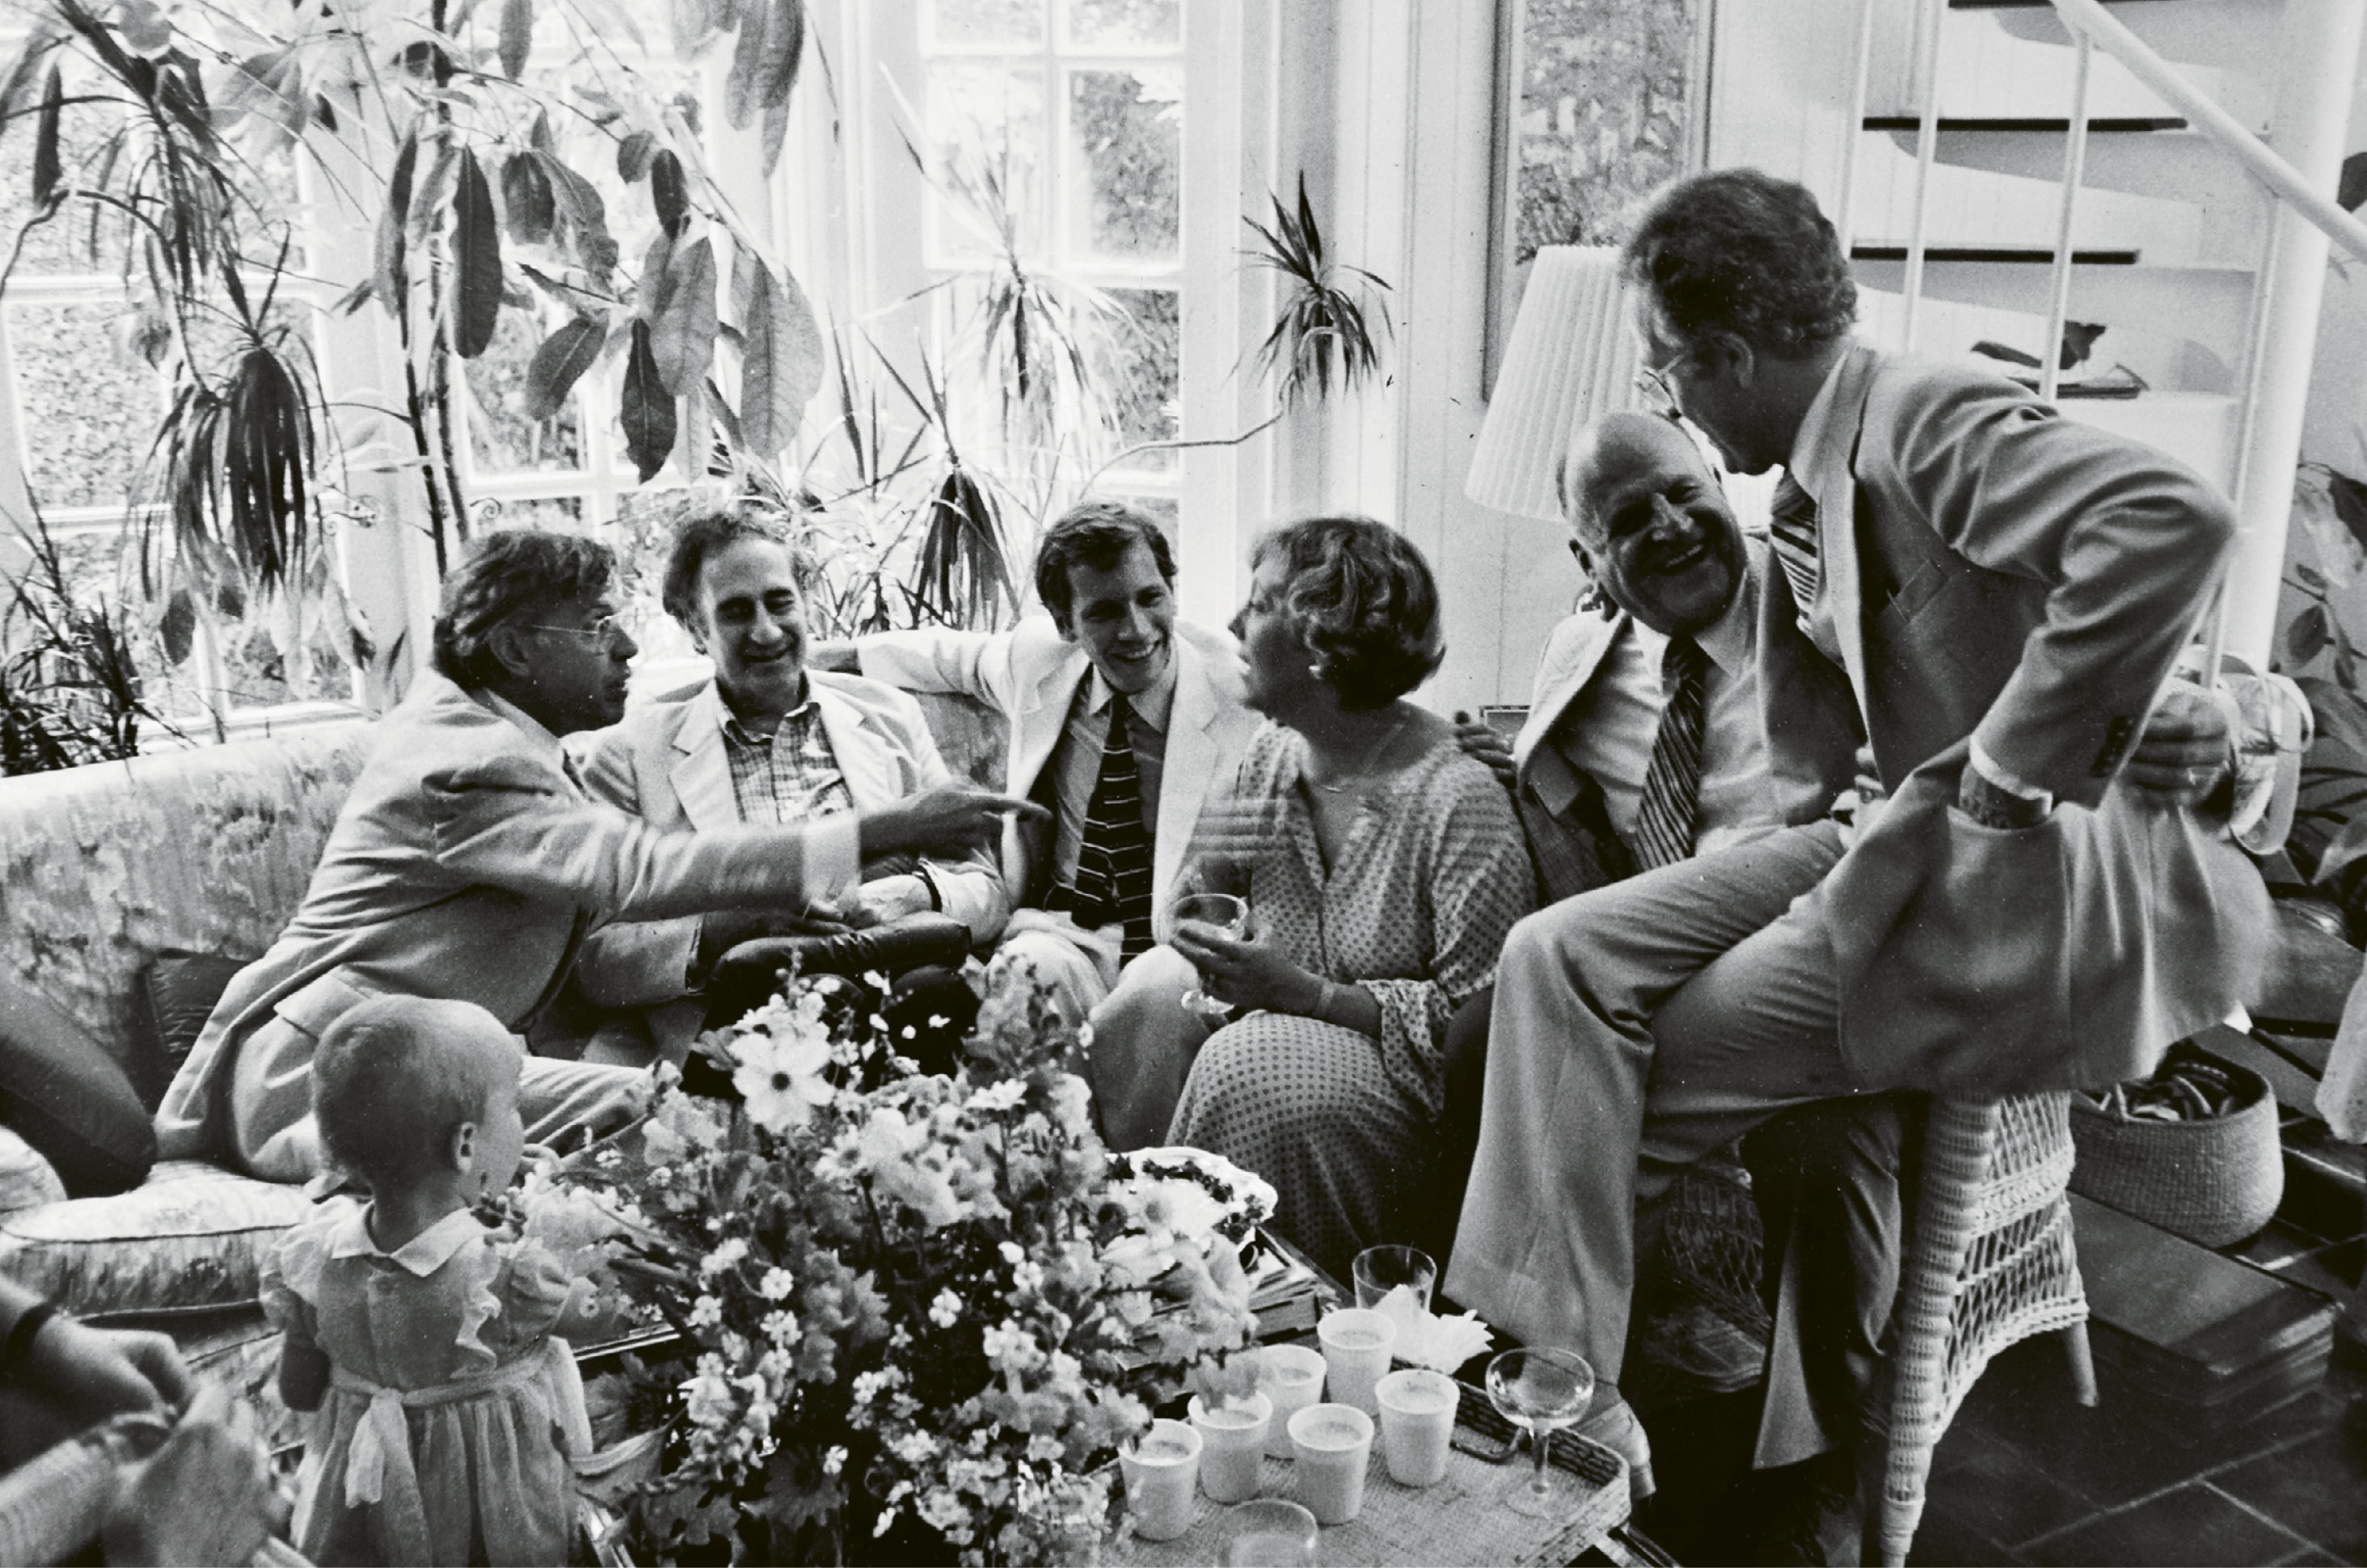 GARDEN PARTY: Ever the hostess, Patti entertains (from left) Charles Wadsworth, Gian Carlo Menotti, Jim Kearney, Ted Stern, and Scott Nickrenz in the McGee family sunroom overlooking the garden, after a Spoleto Festival USA chamber music concert in 1979.